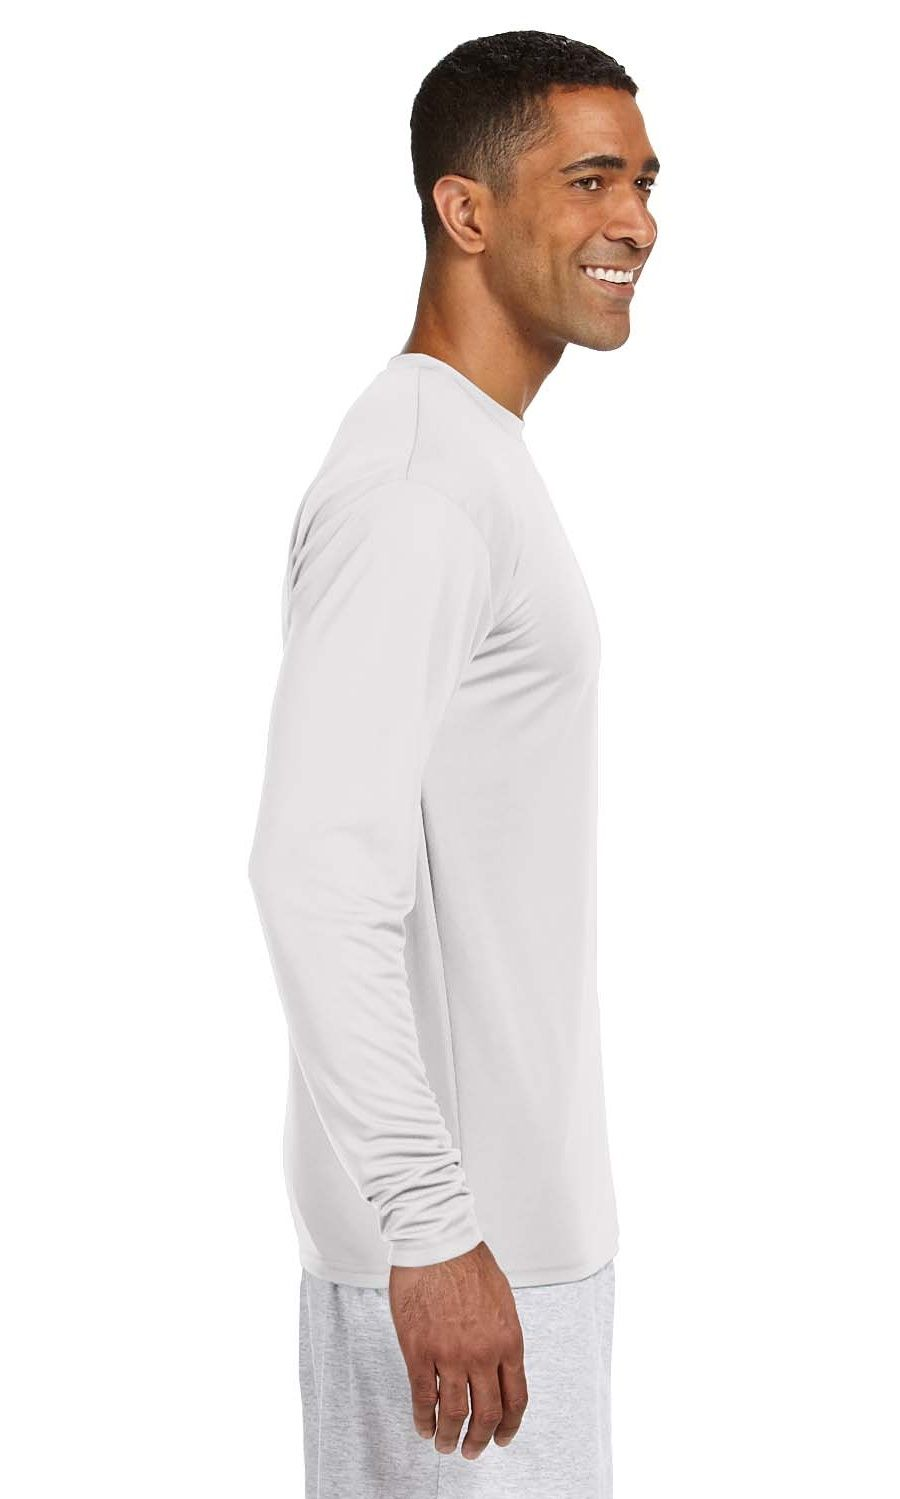 A4 N3165 Men S Long Sleeve Cooling Performance Crew Ad Men Ad